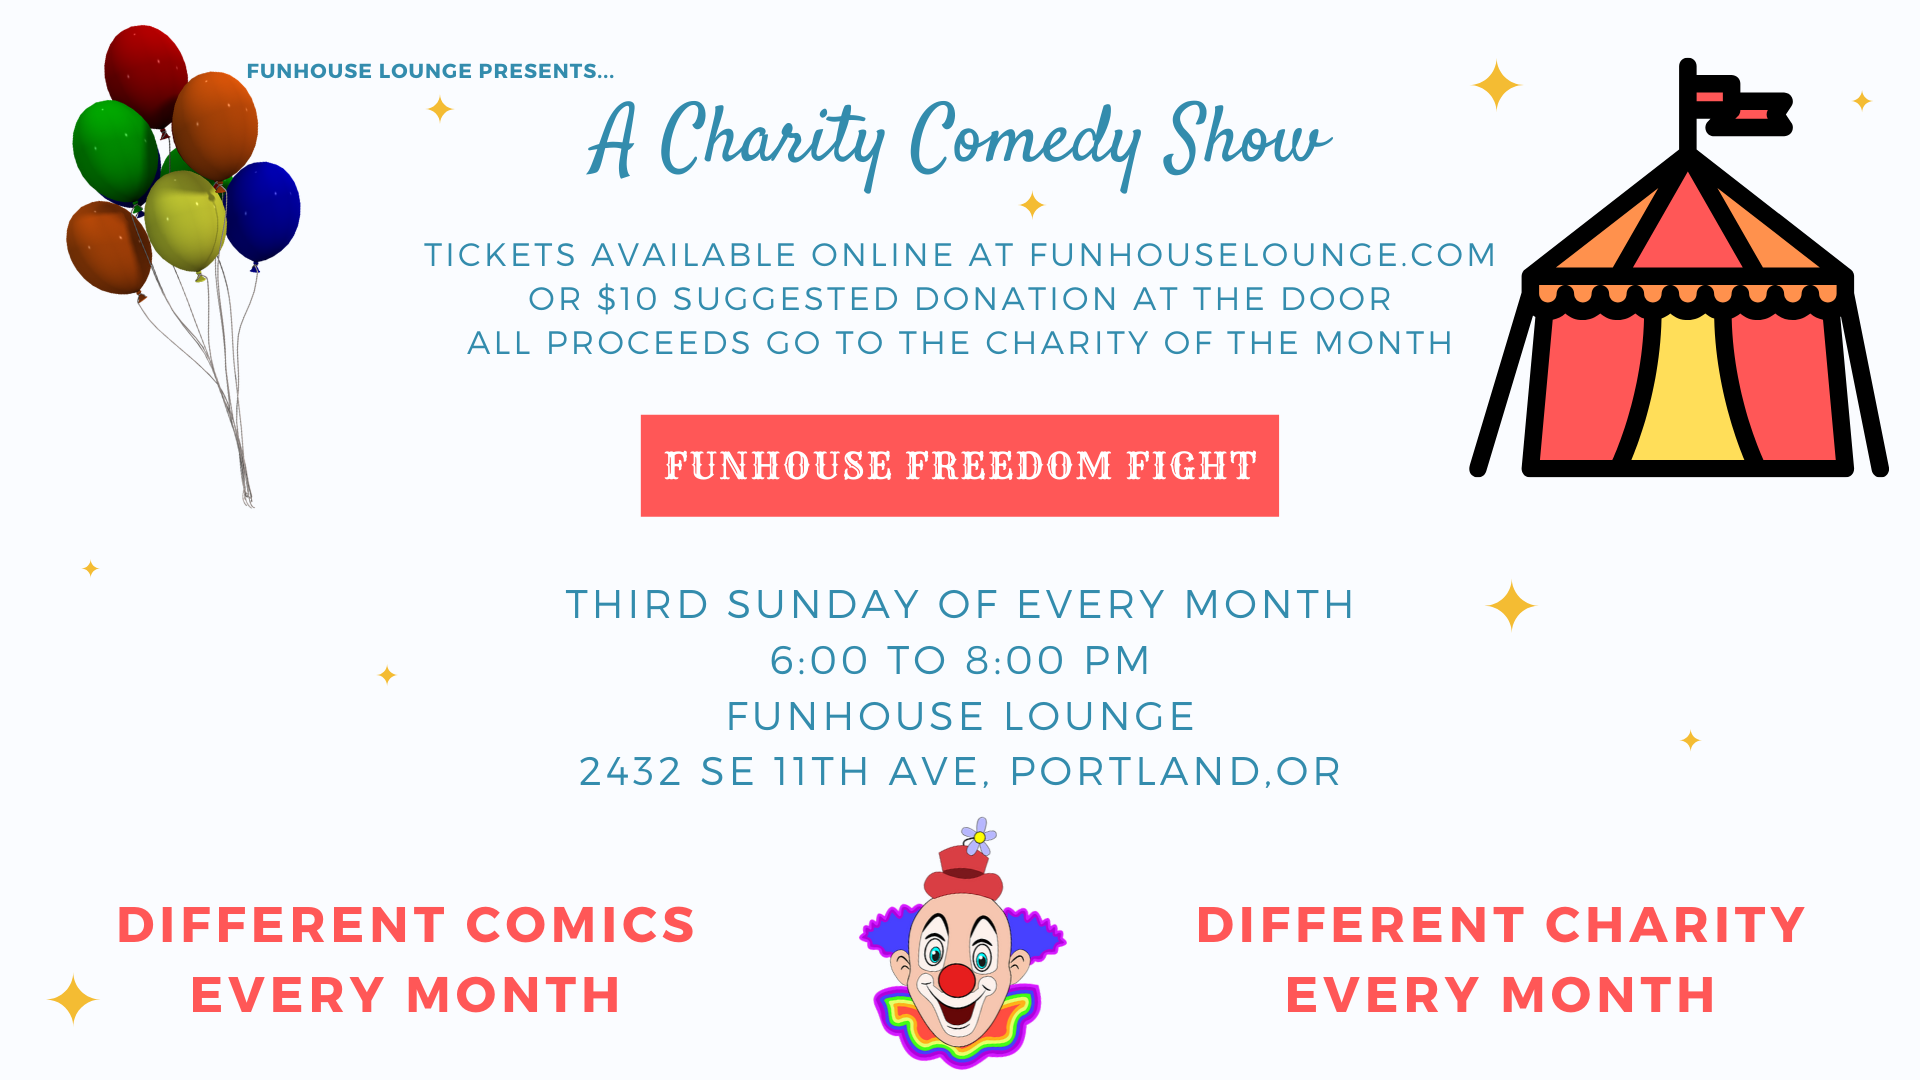 Funhouse Freedom Fight Charity Comedy Show